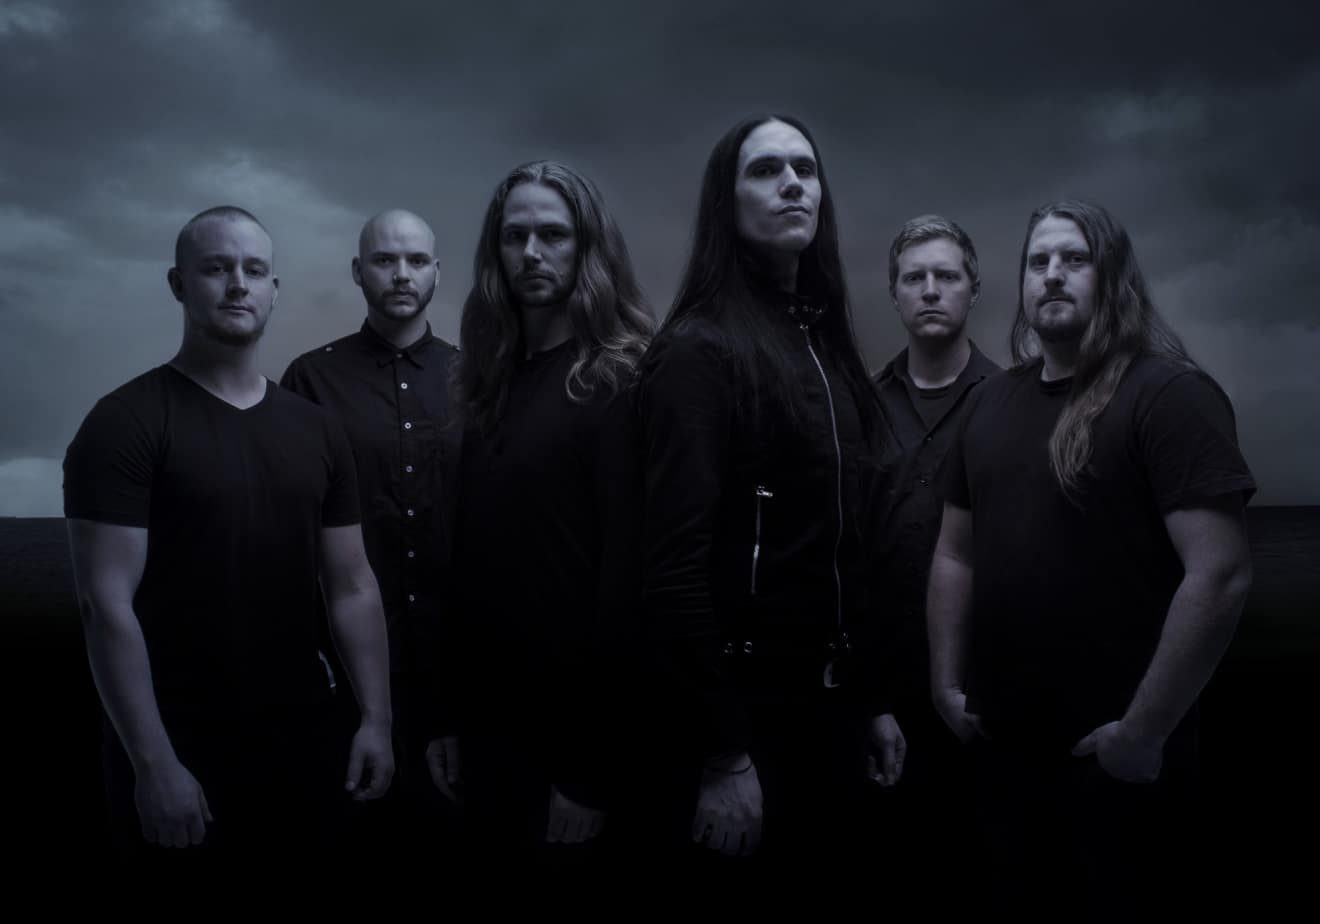 Ne Obliviscaris musicians on the lookout for minimum wage